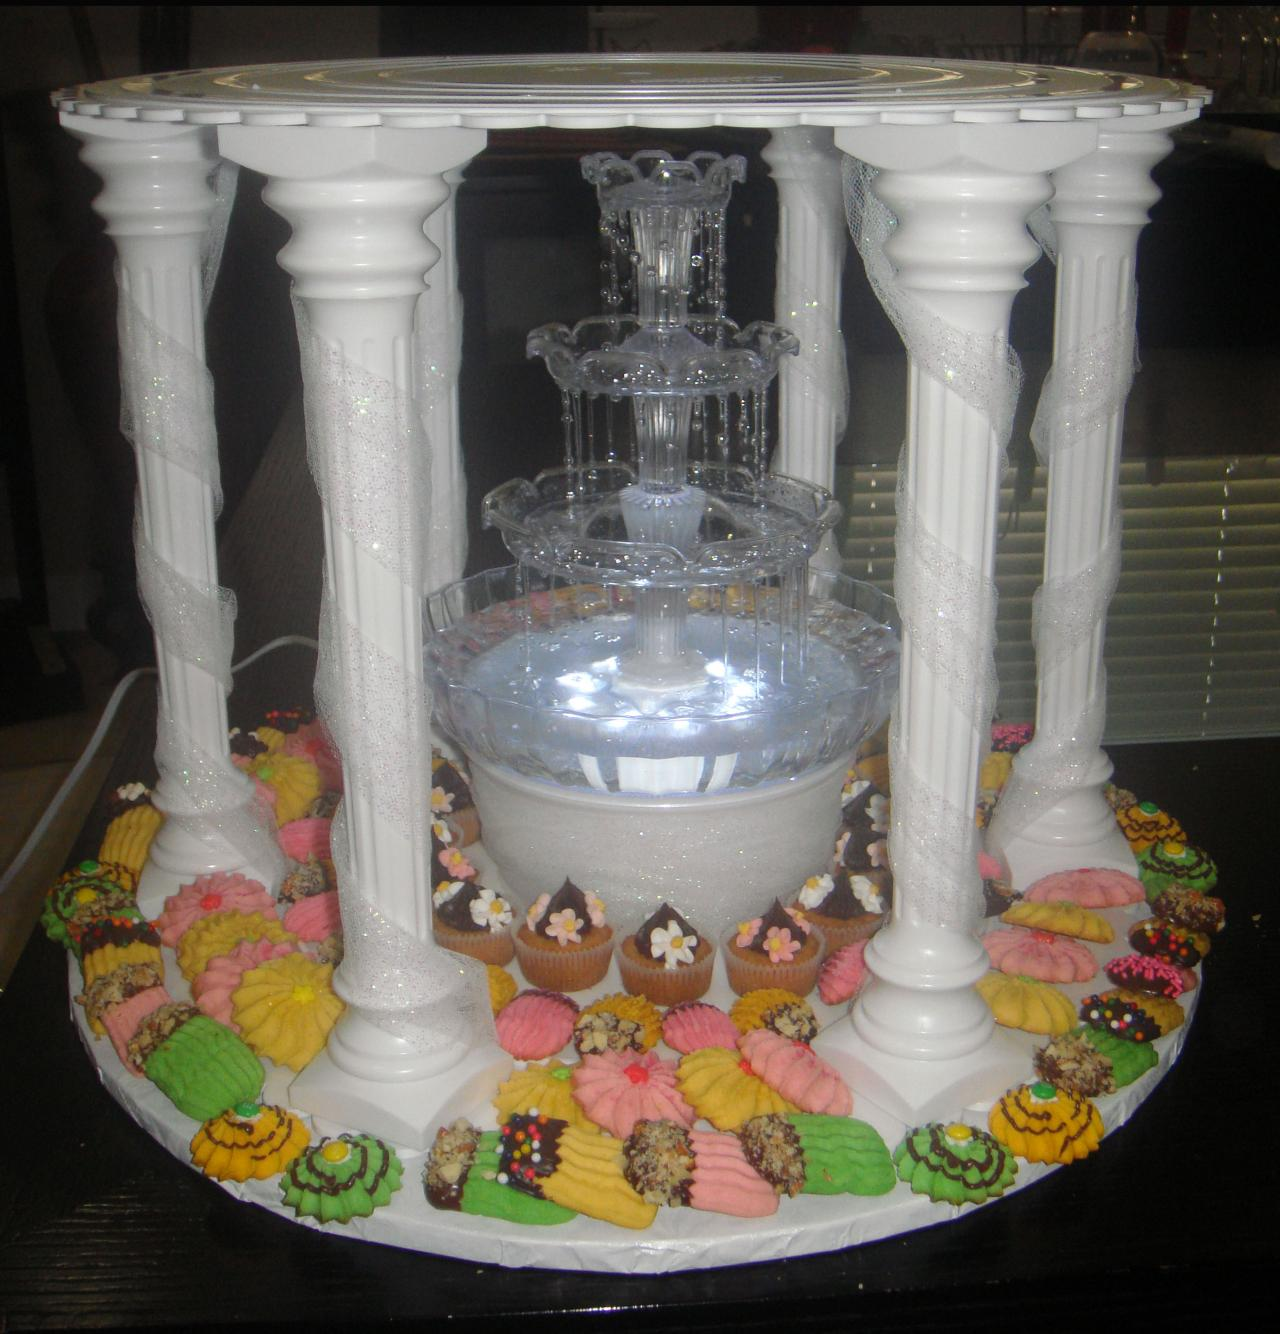 www.sweetsusy.com - Stands for Cakes & Cupcakes